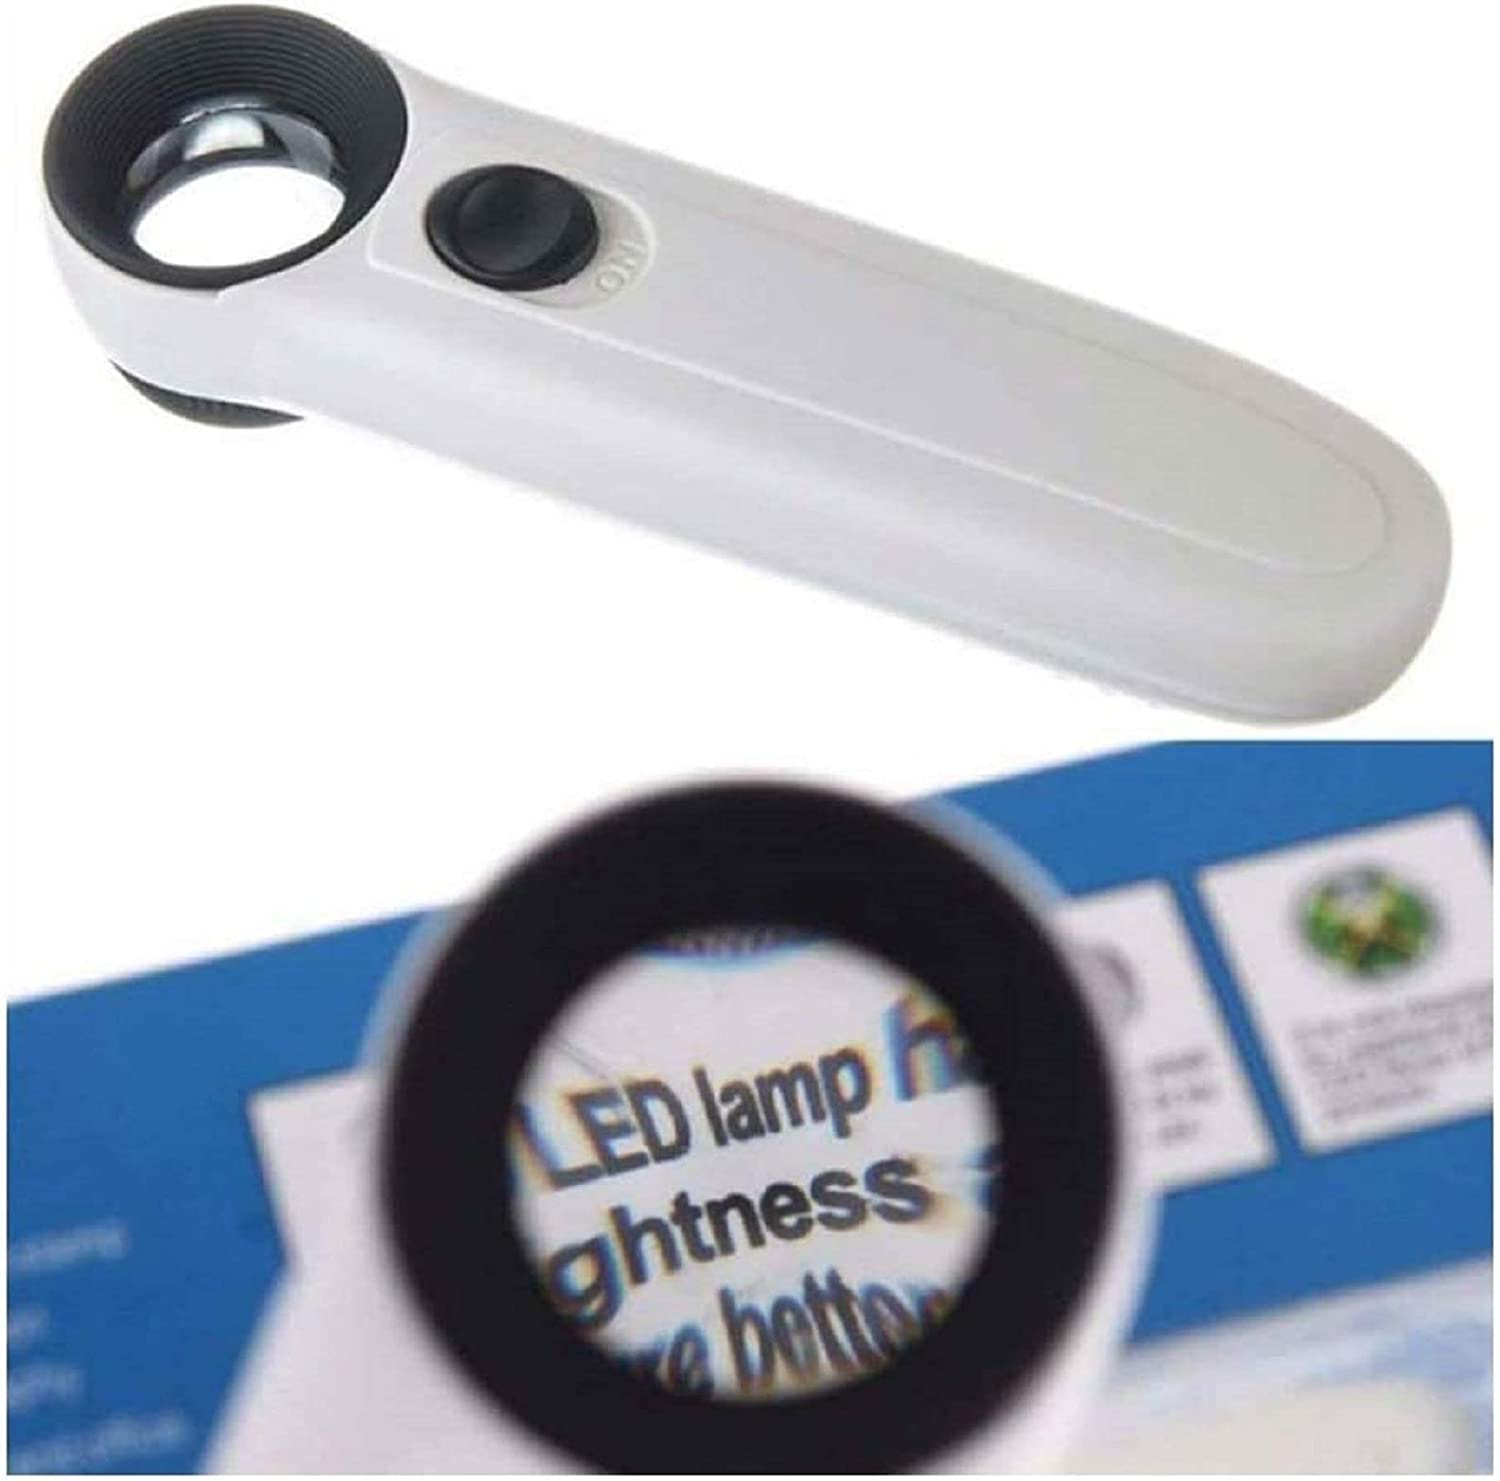 40X Magnifying Magnifier Glass trust Jeweler Loupe Max 73% OFF Jewelry Loop 2 Eye